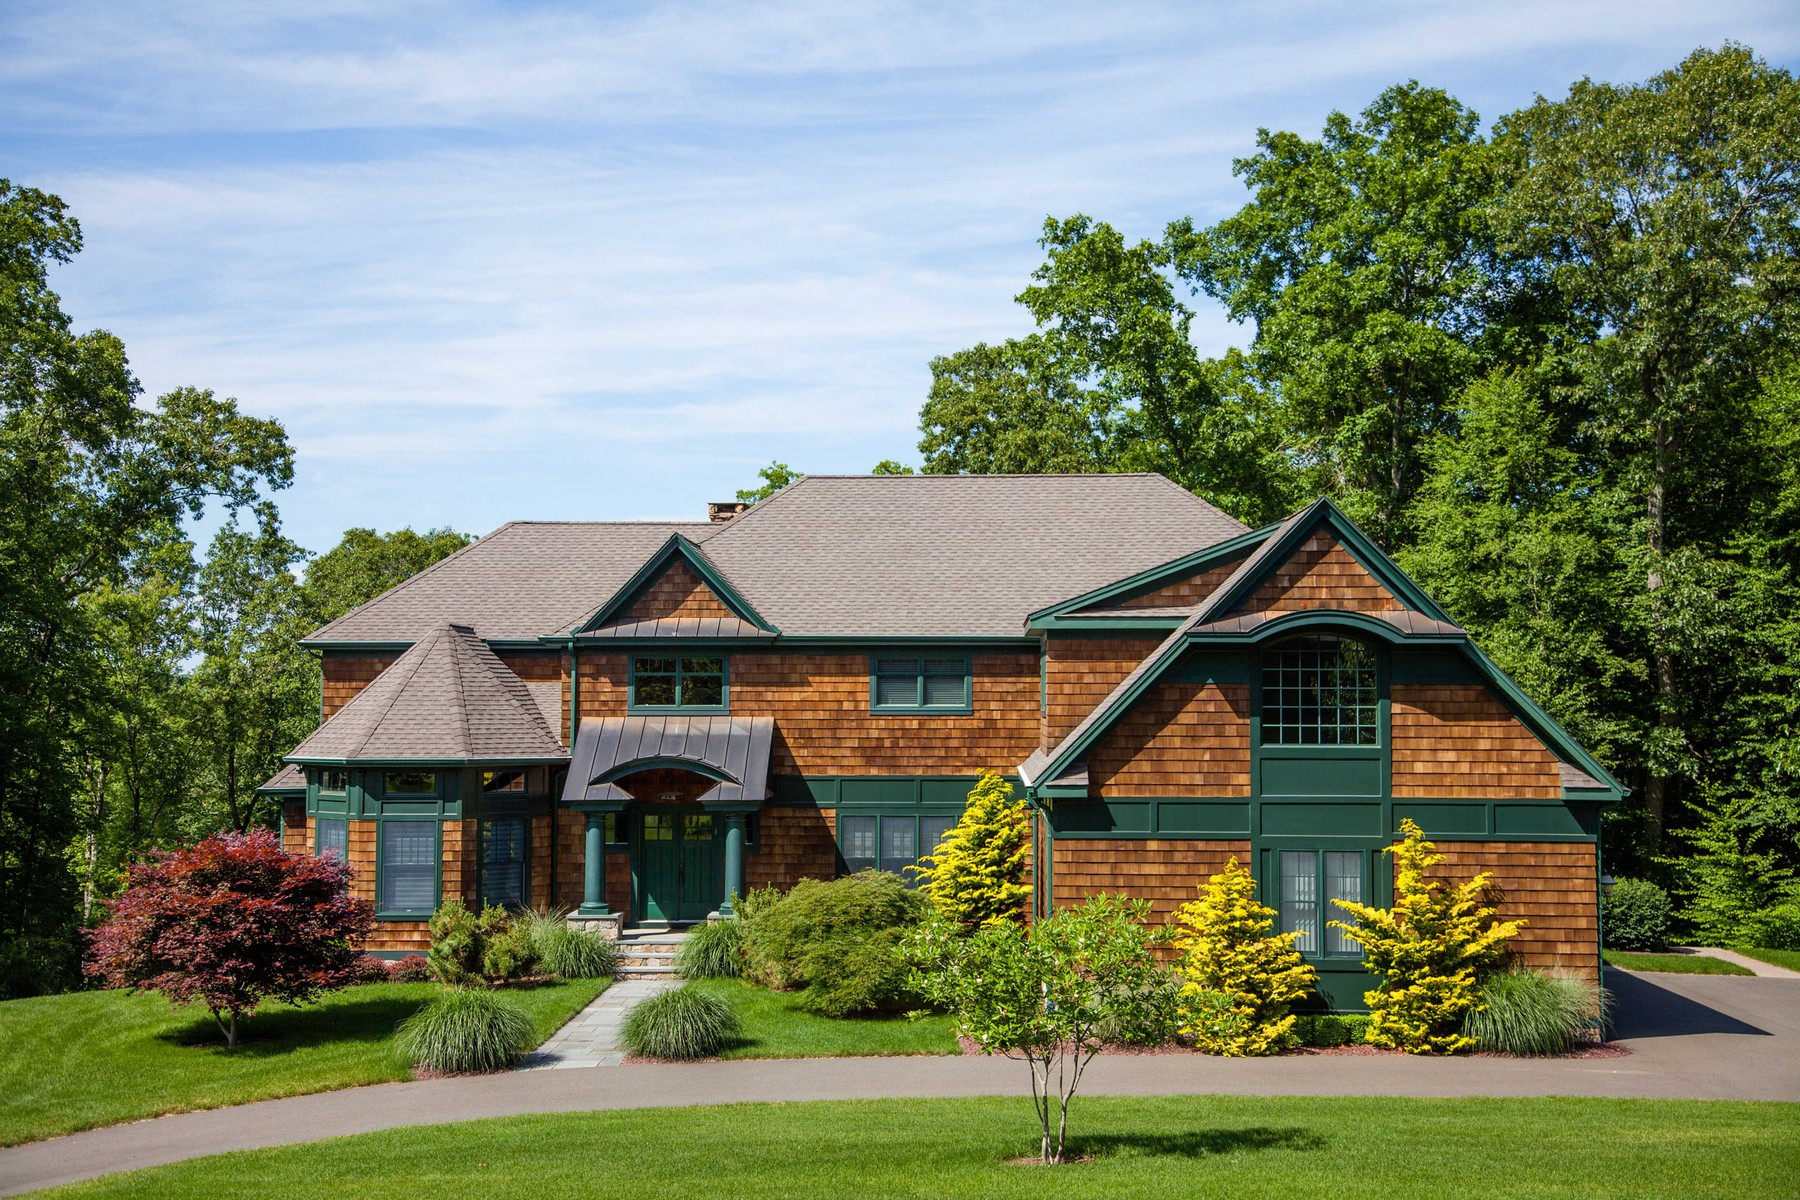 Property For Sale at Shingle Style Colonial on 5.86 Acres